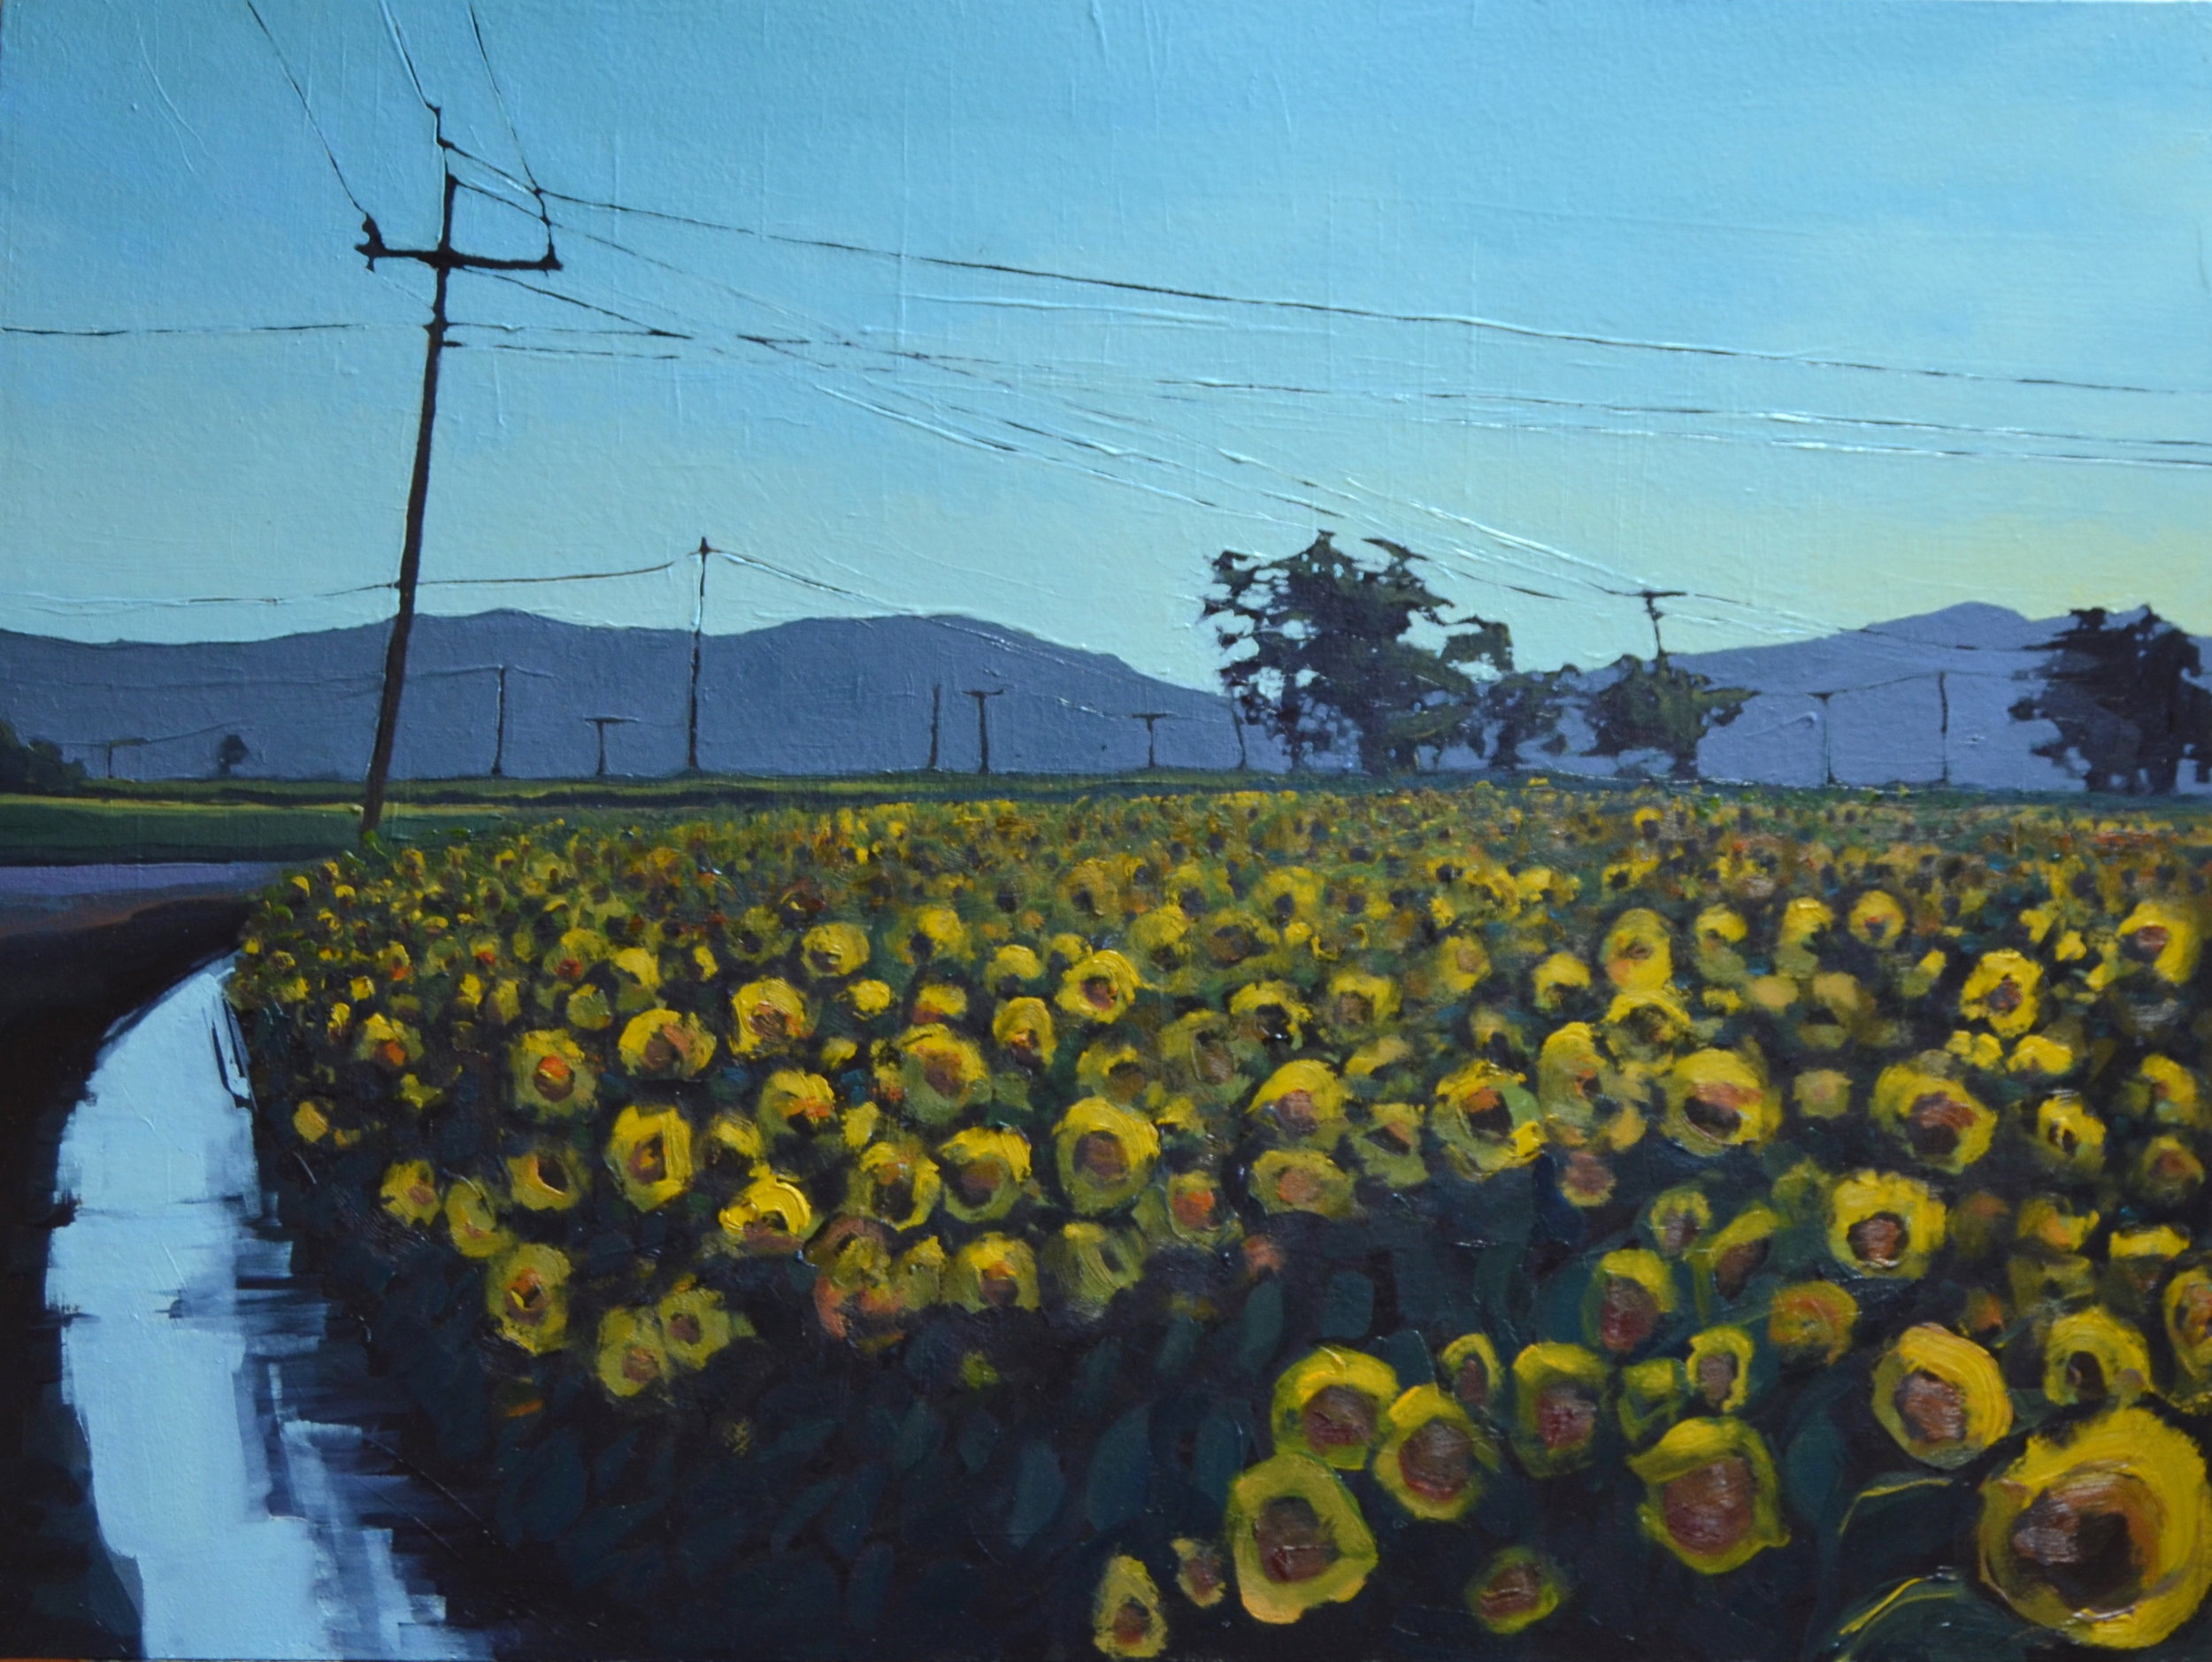 Sunflowers, Watered